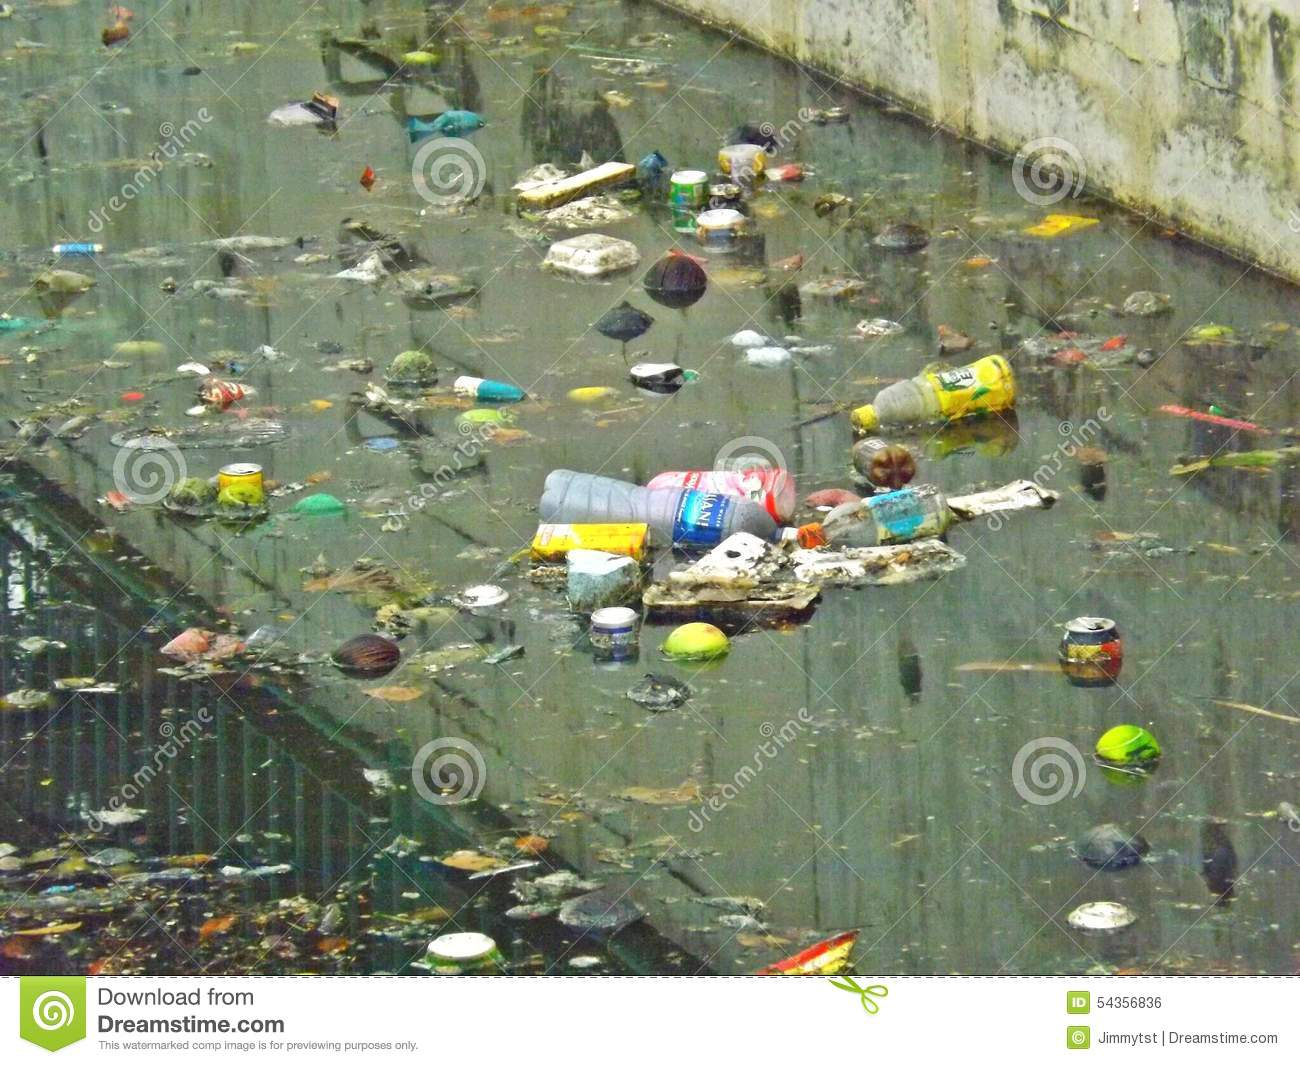 littering and pollution Stormwater can act as the ultimate vehicle for transferring litter from urban environments to seas.